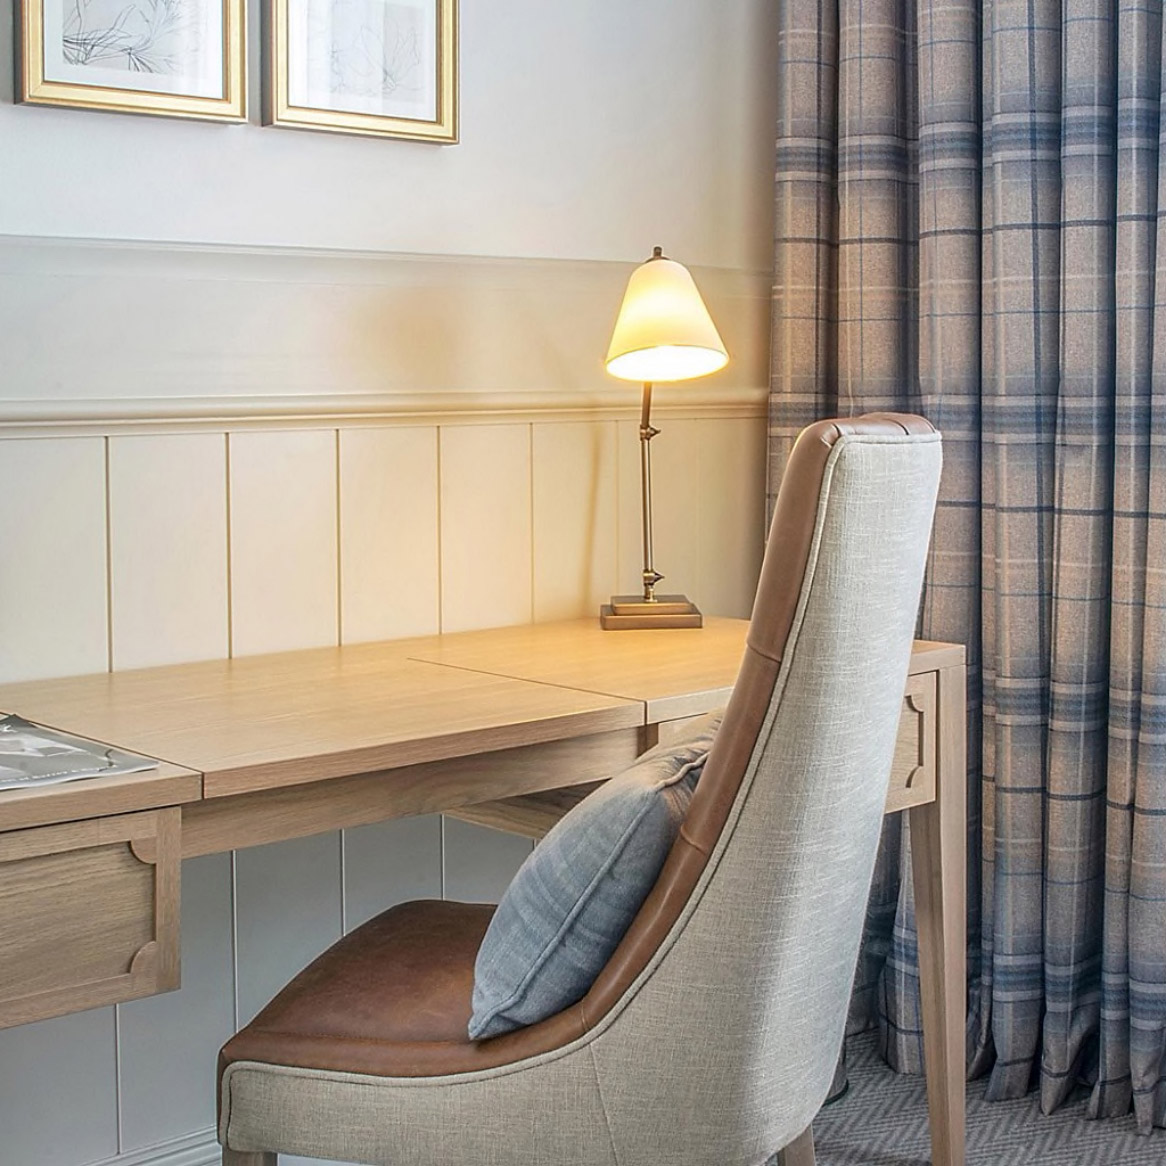 Executive Room desk and chair